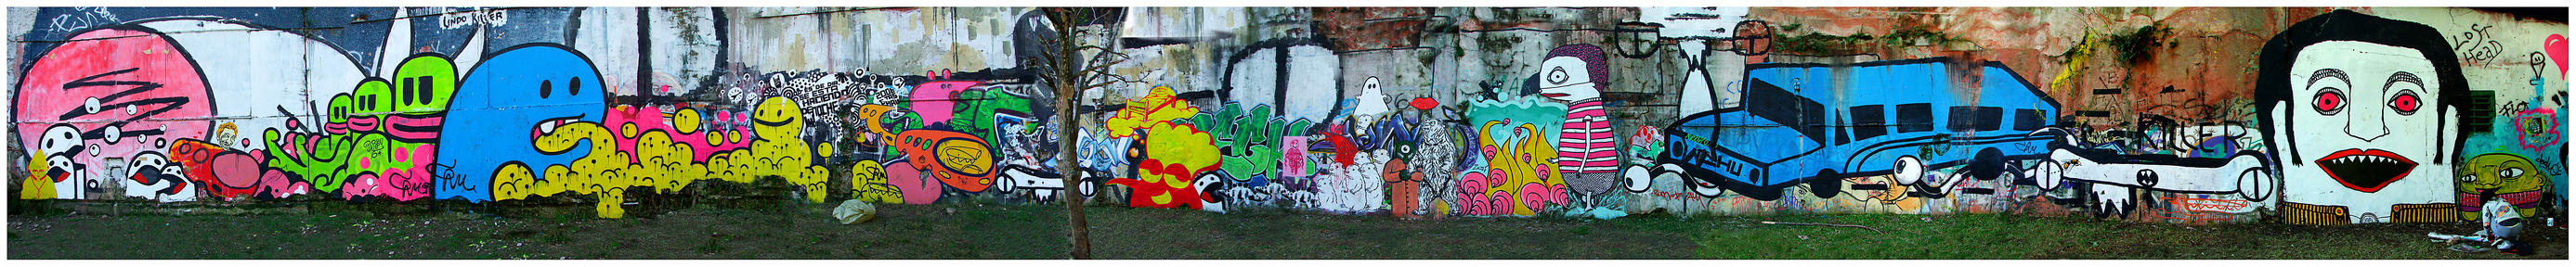 pan grafittie by romique